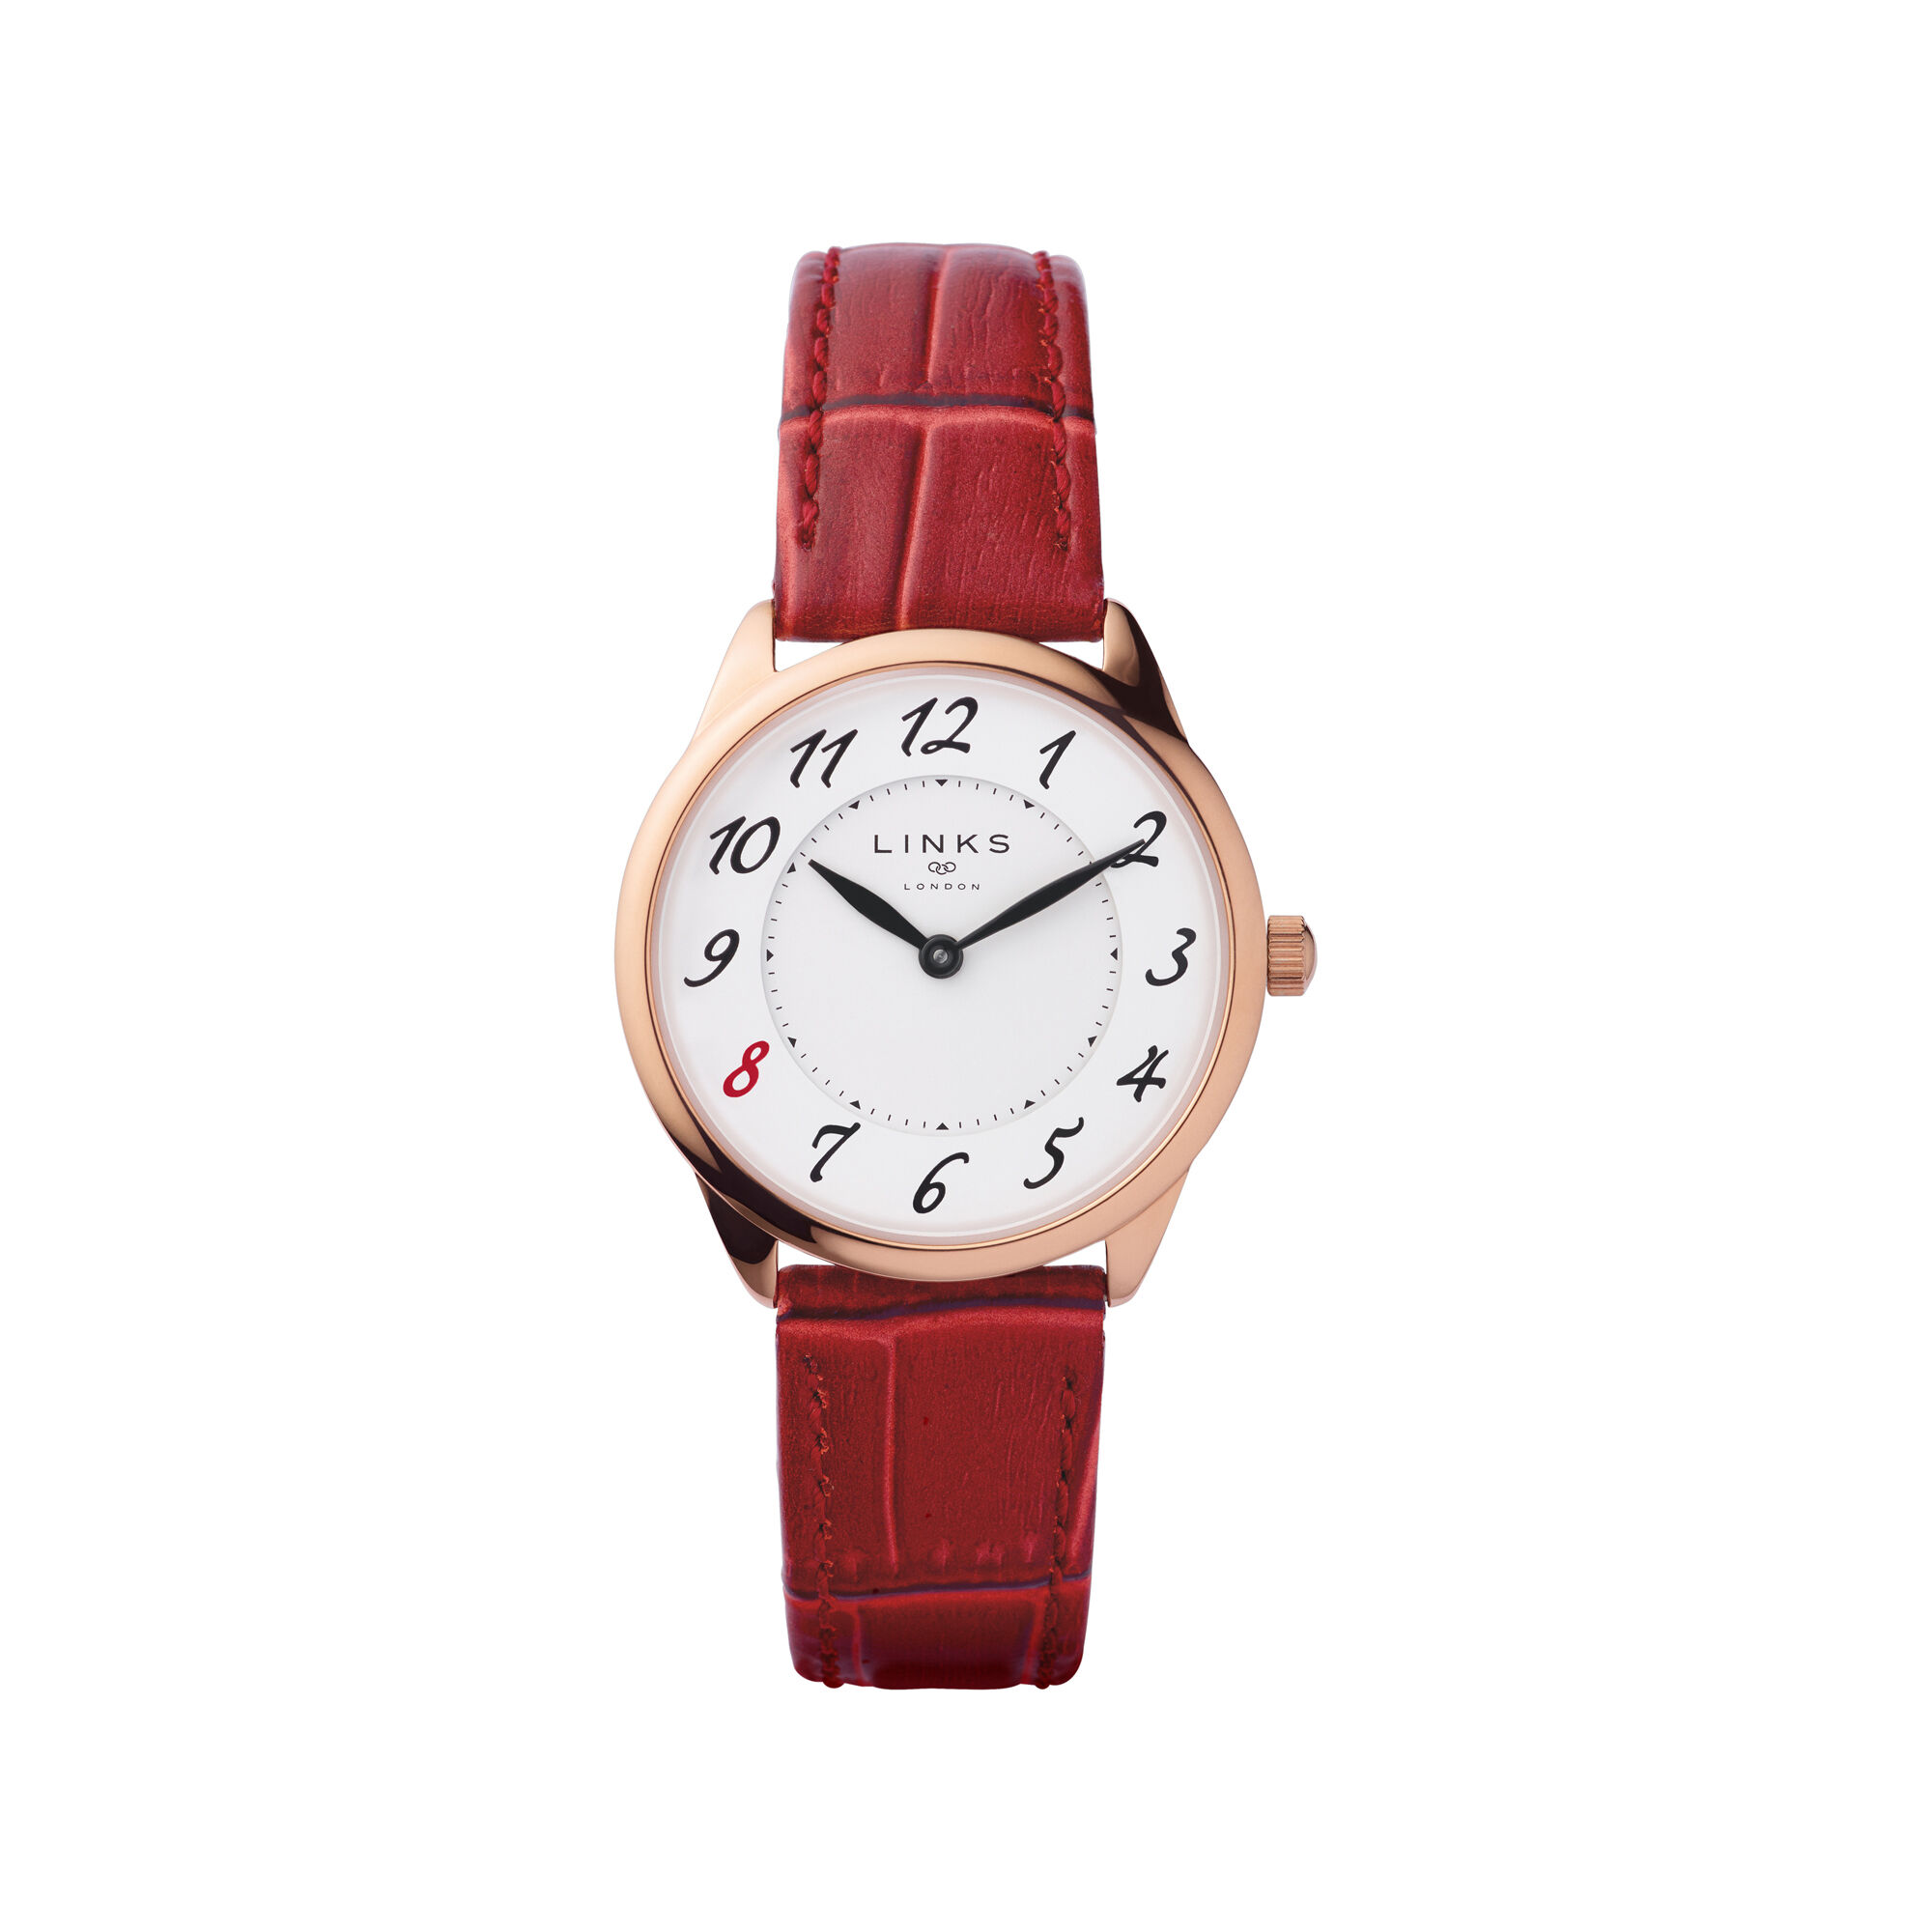 watches fullscreen watch lyst view accessories fruiticious leather guess analog red in